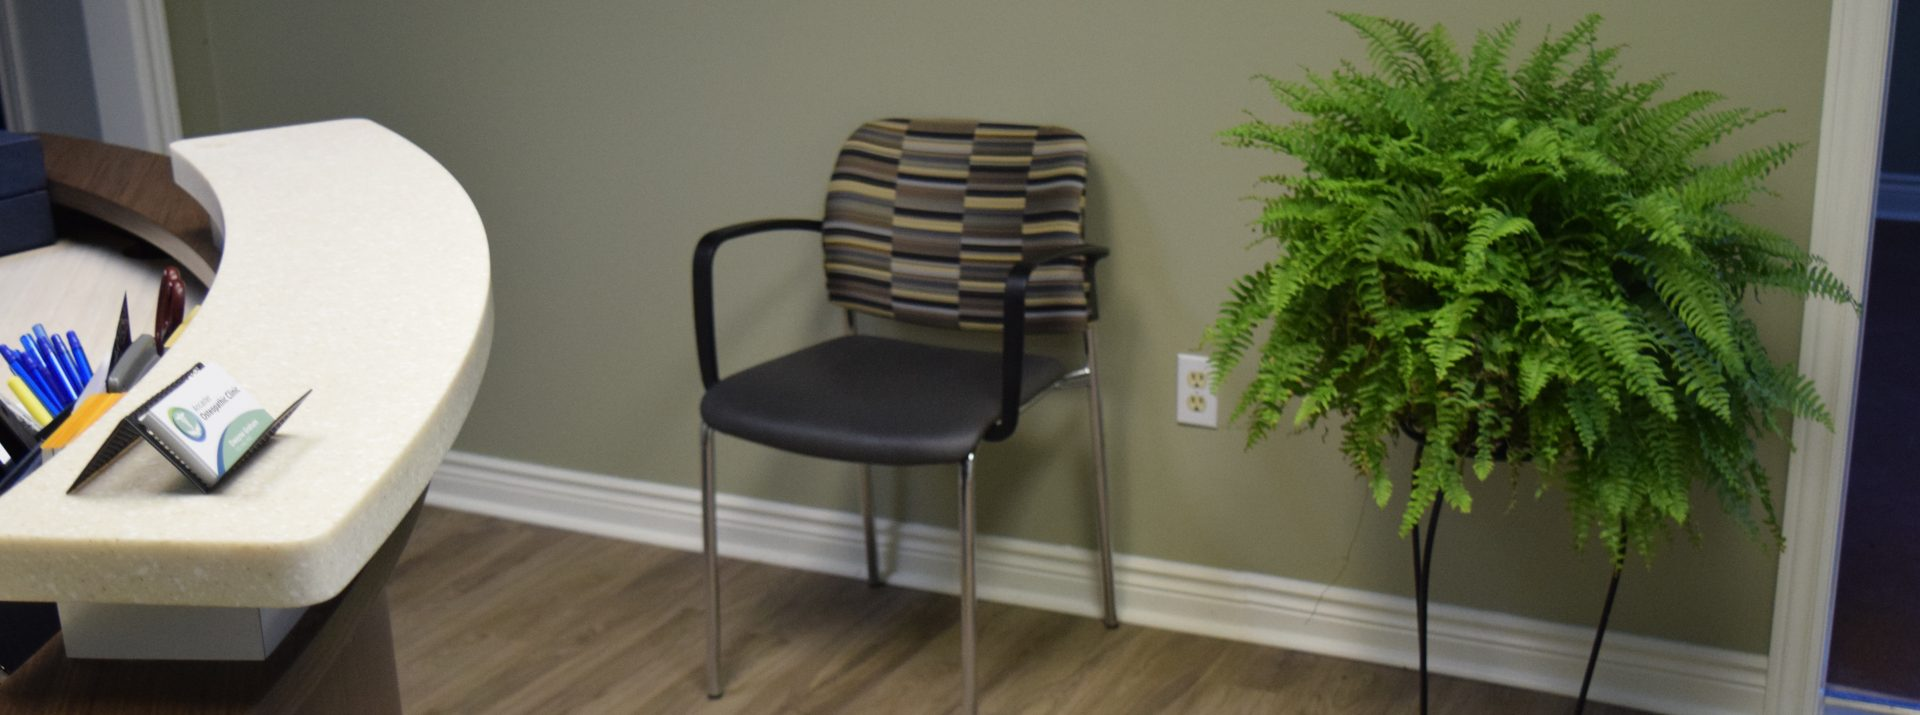 We are a unique Osteopathic clinic